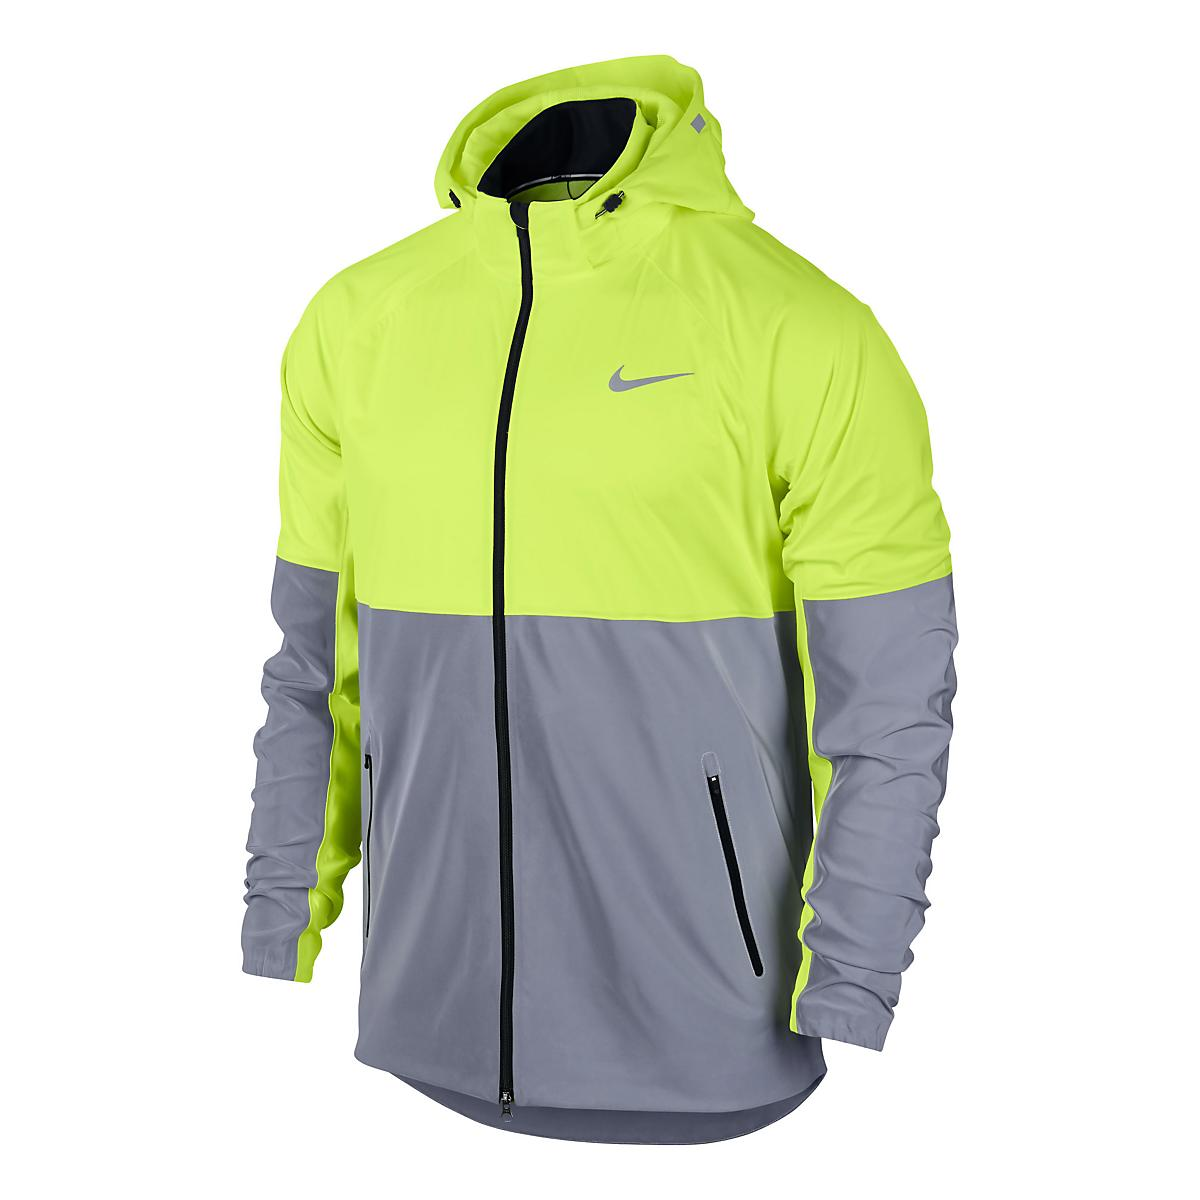 Mens Nike Shield Flash Running Jackets at Road Runner Sports 08549a45ceb9